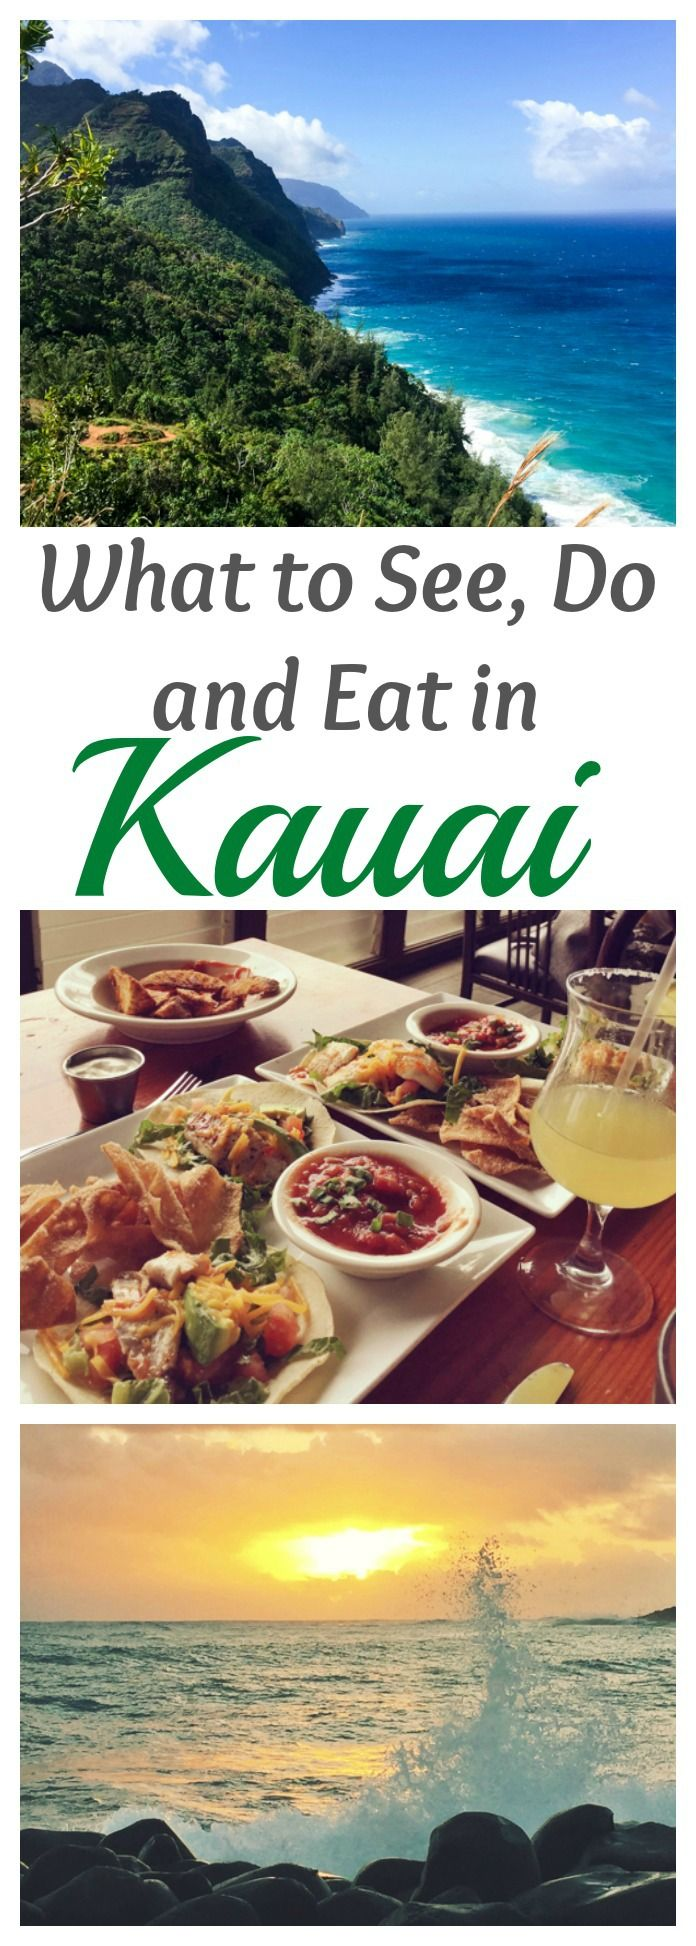 What to See do and Eat in Kauai. Things to do, beaches, and best restaurants